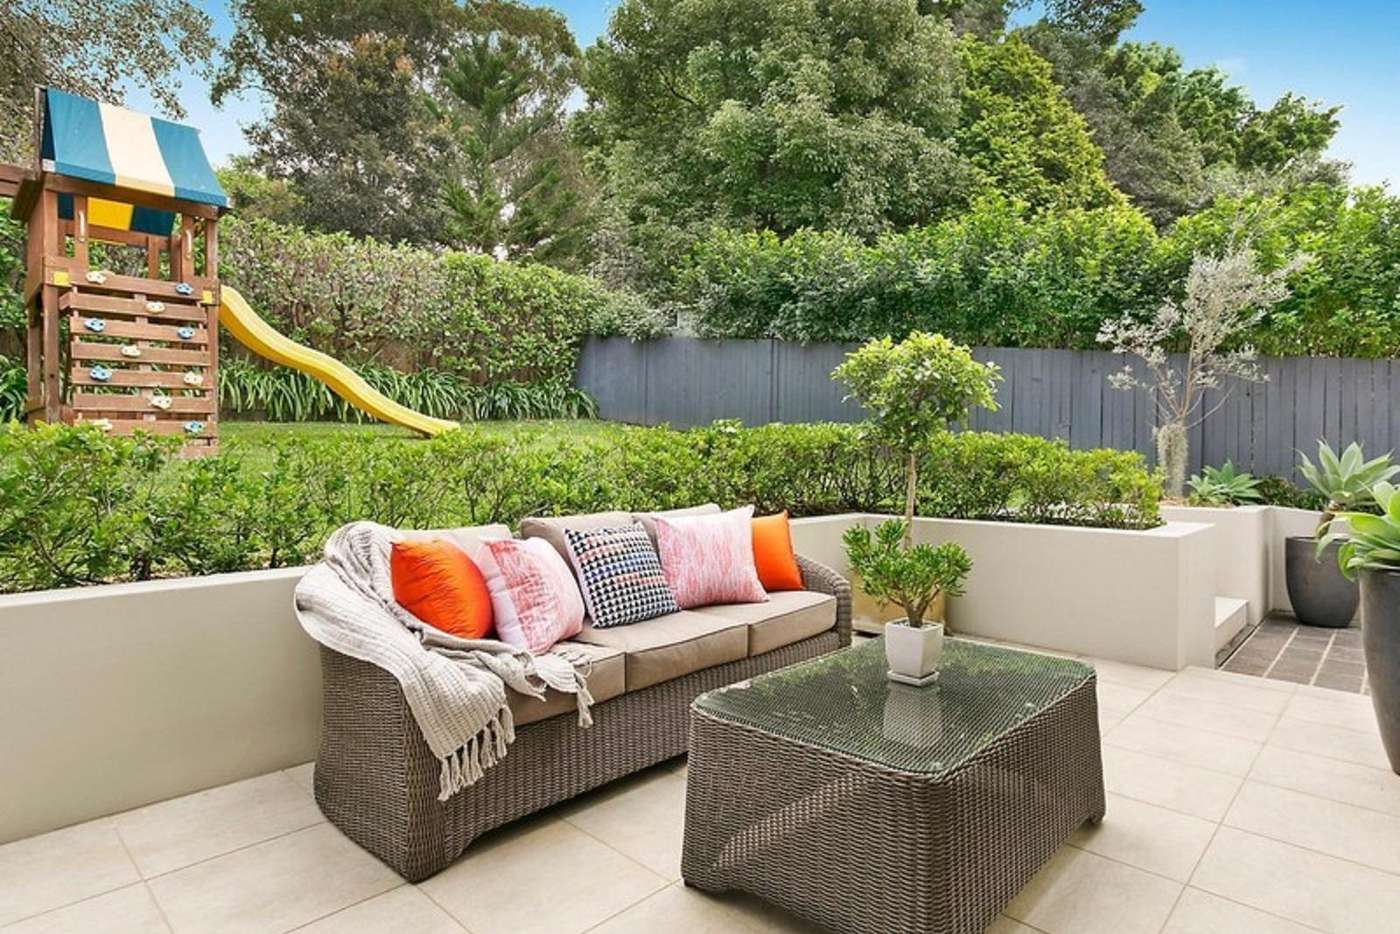 Seventh view of Homely house listing, 10 Windeyer Avenue, Gladesville NSW 2111